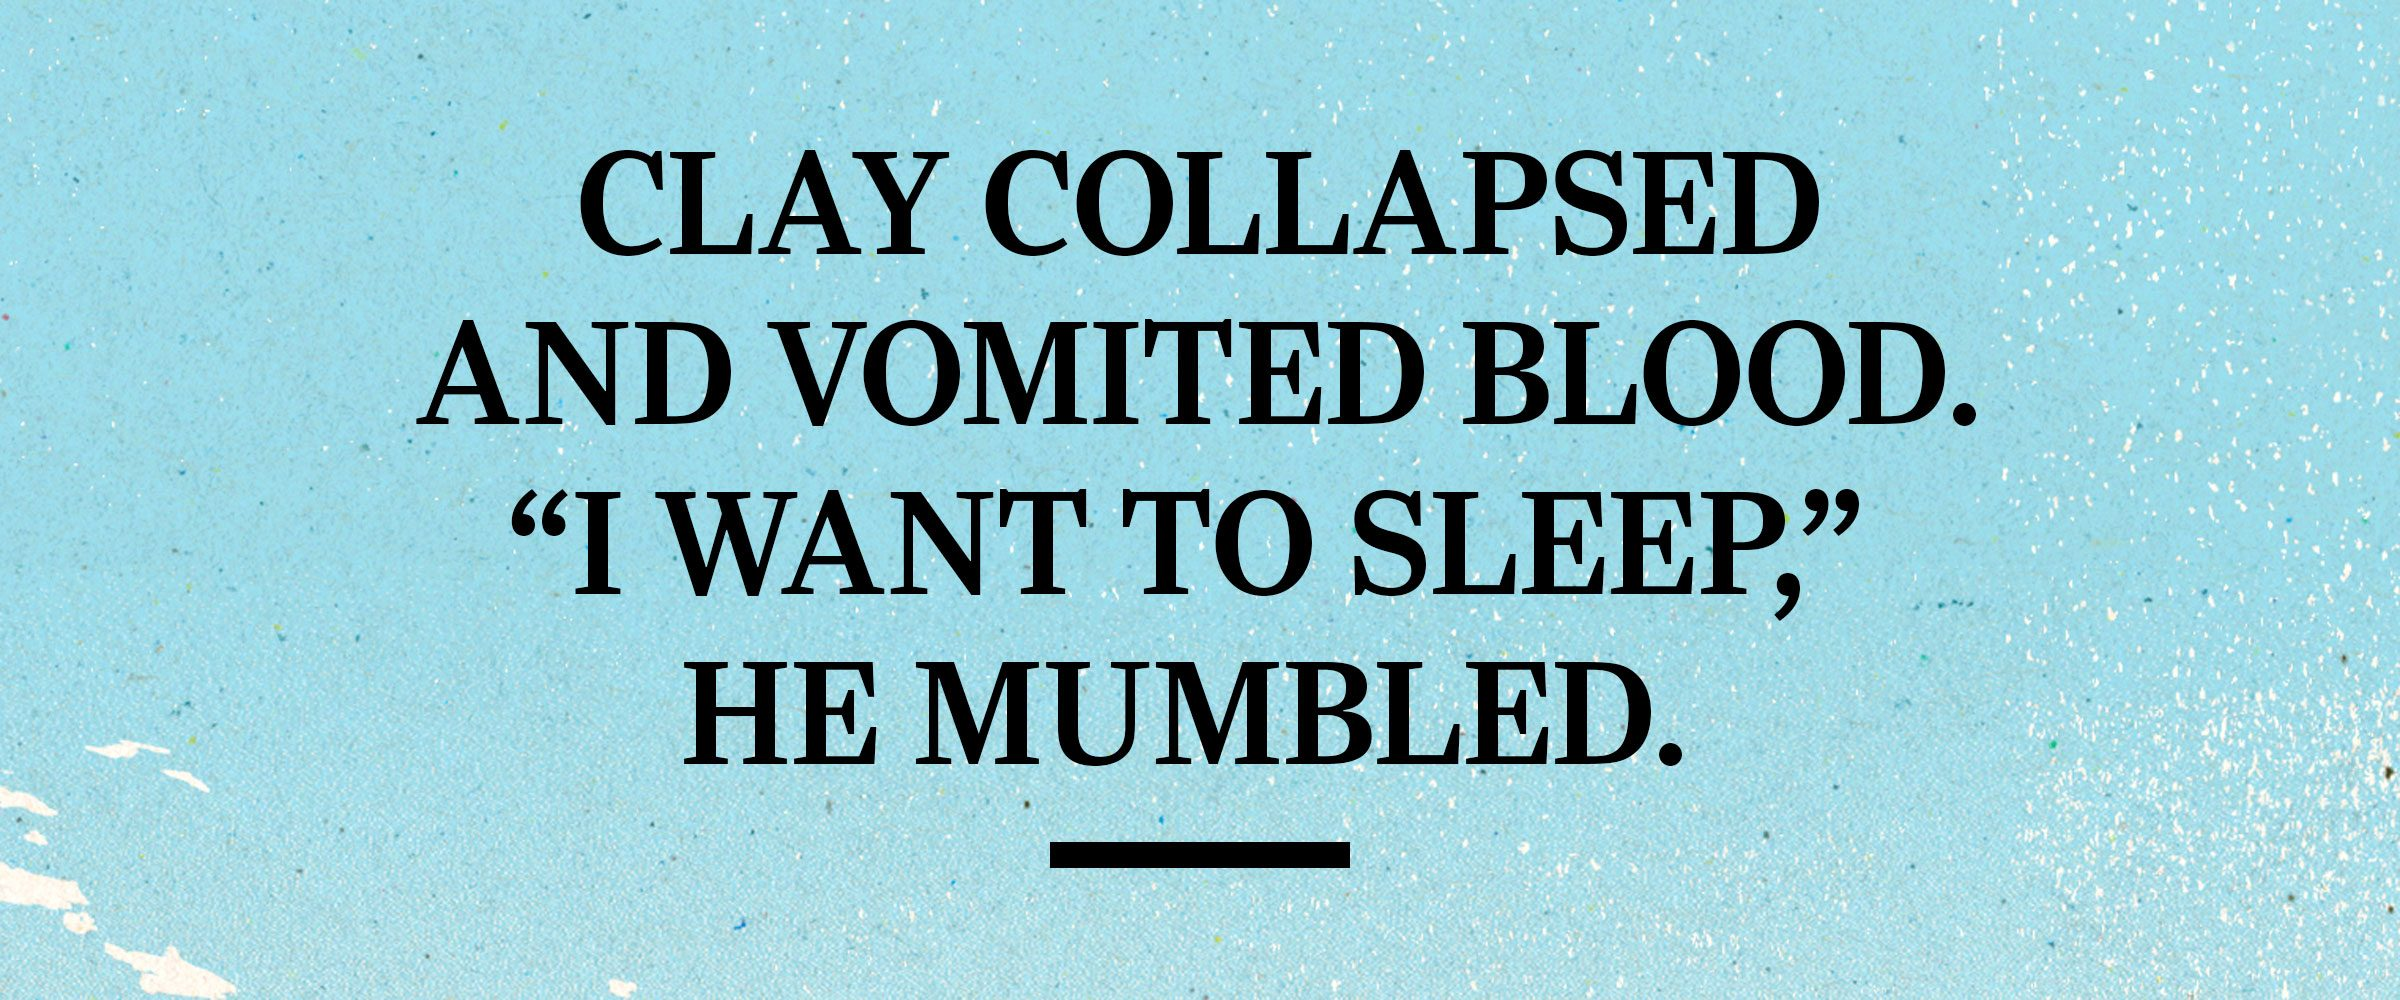 """text: Clay collapsed and vomited blood. """"I want to sleep,"""" he mumbled."""